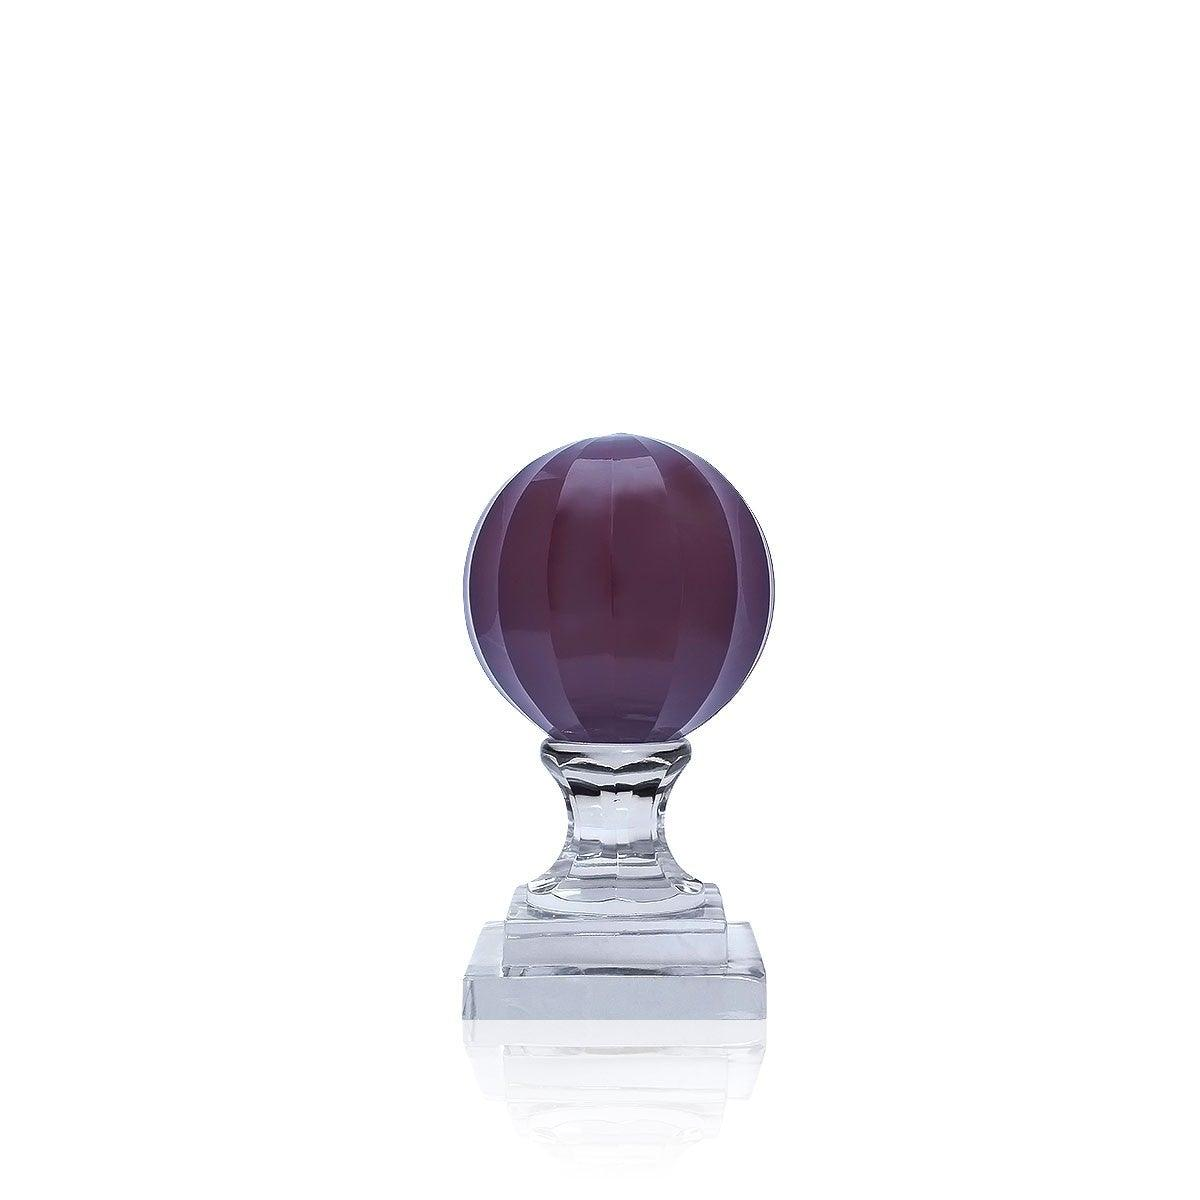 Krisralli Purple Ball With Transparent Base